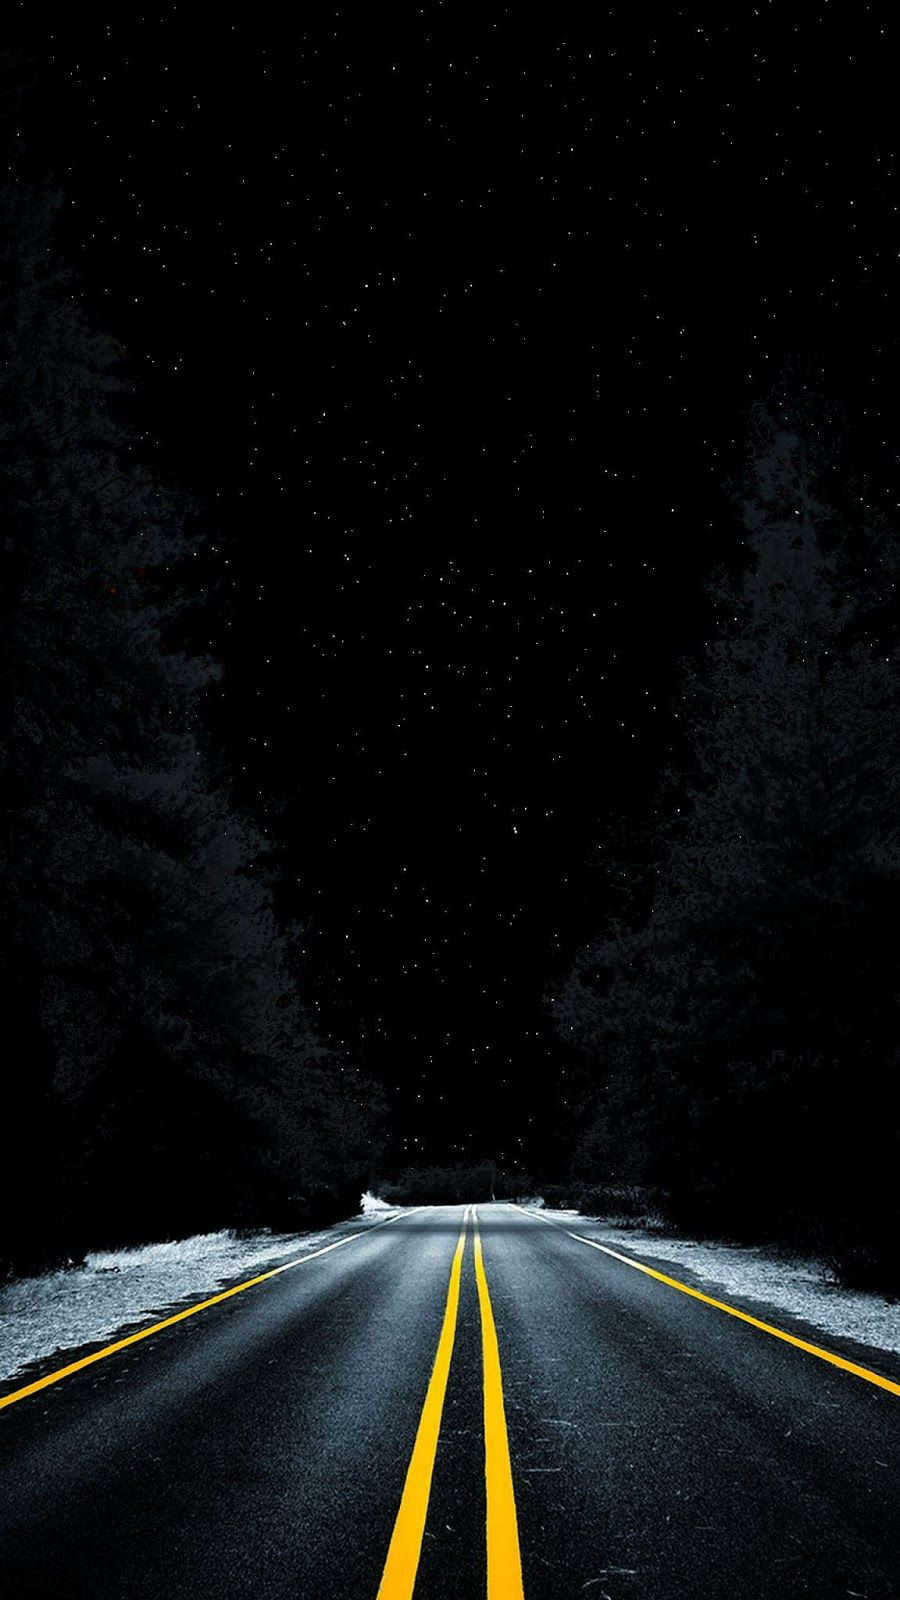 Road Into Space Mkbhd Wallpaper Variant Mkbhd Wallpapers